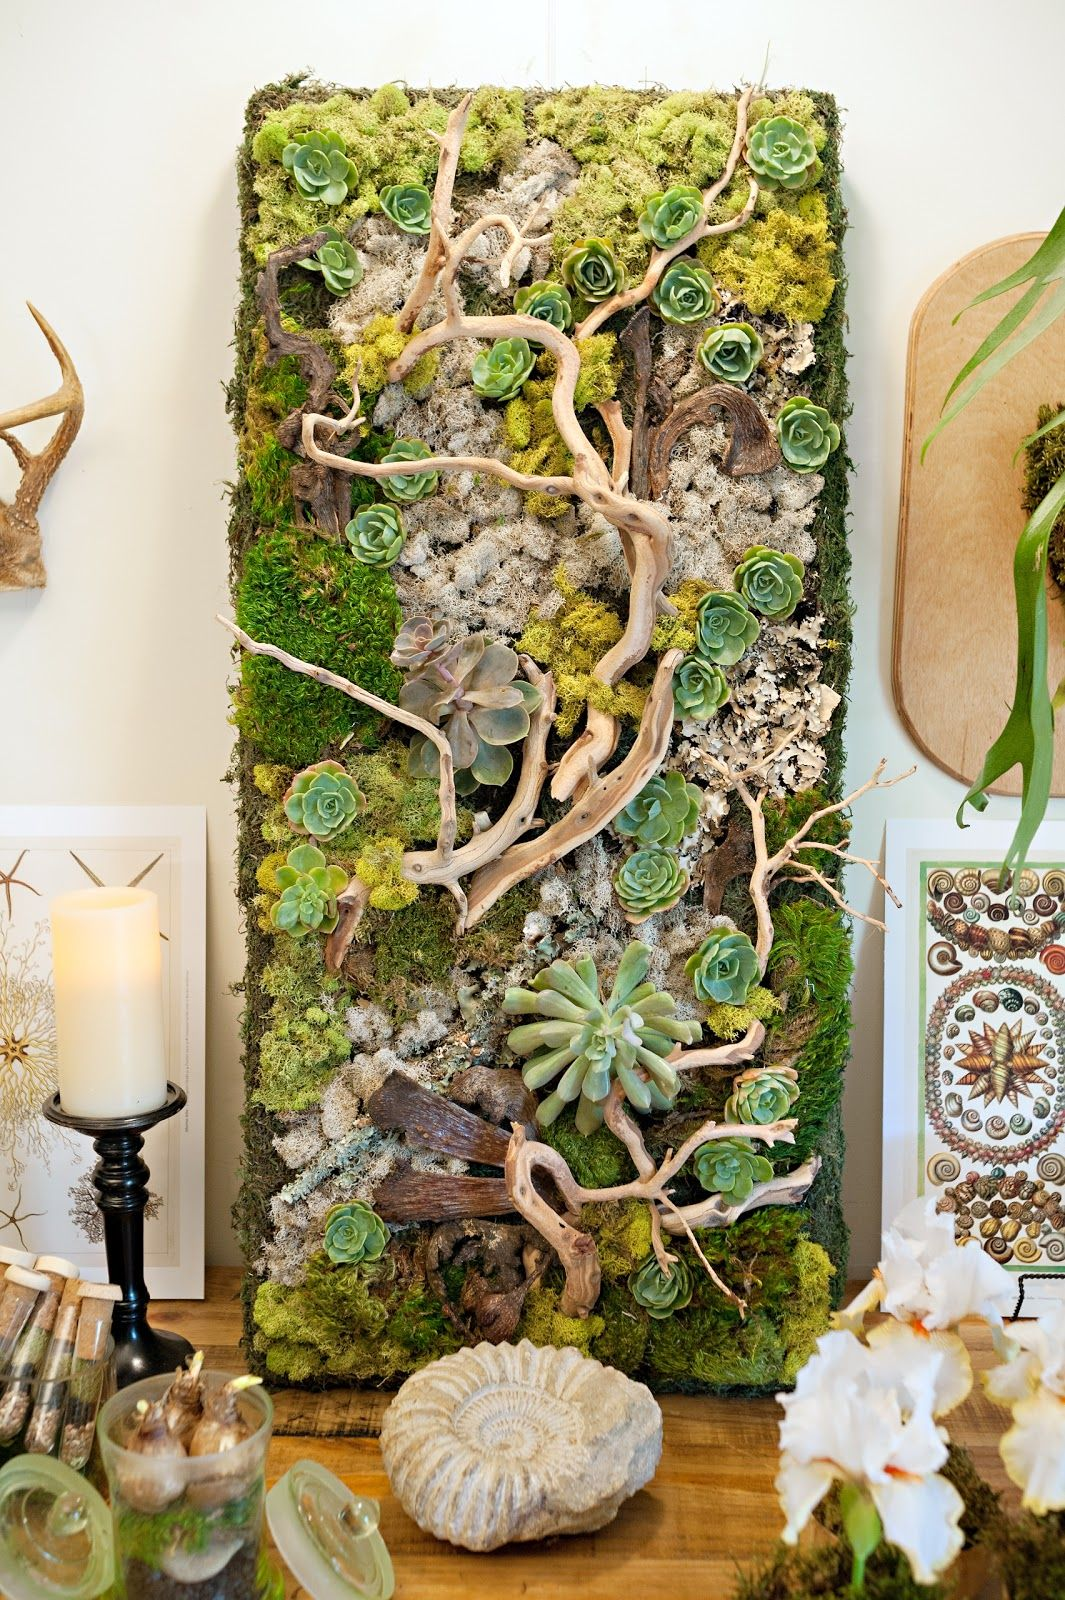 Lovely Embellished+Wall+Panel+Showcases+Succulents+and+Driftwood